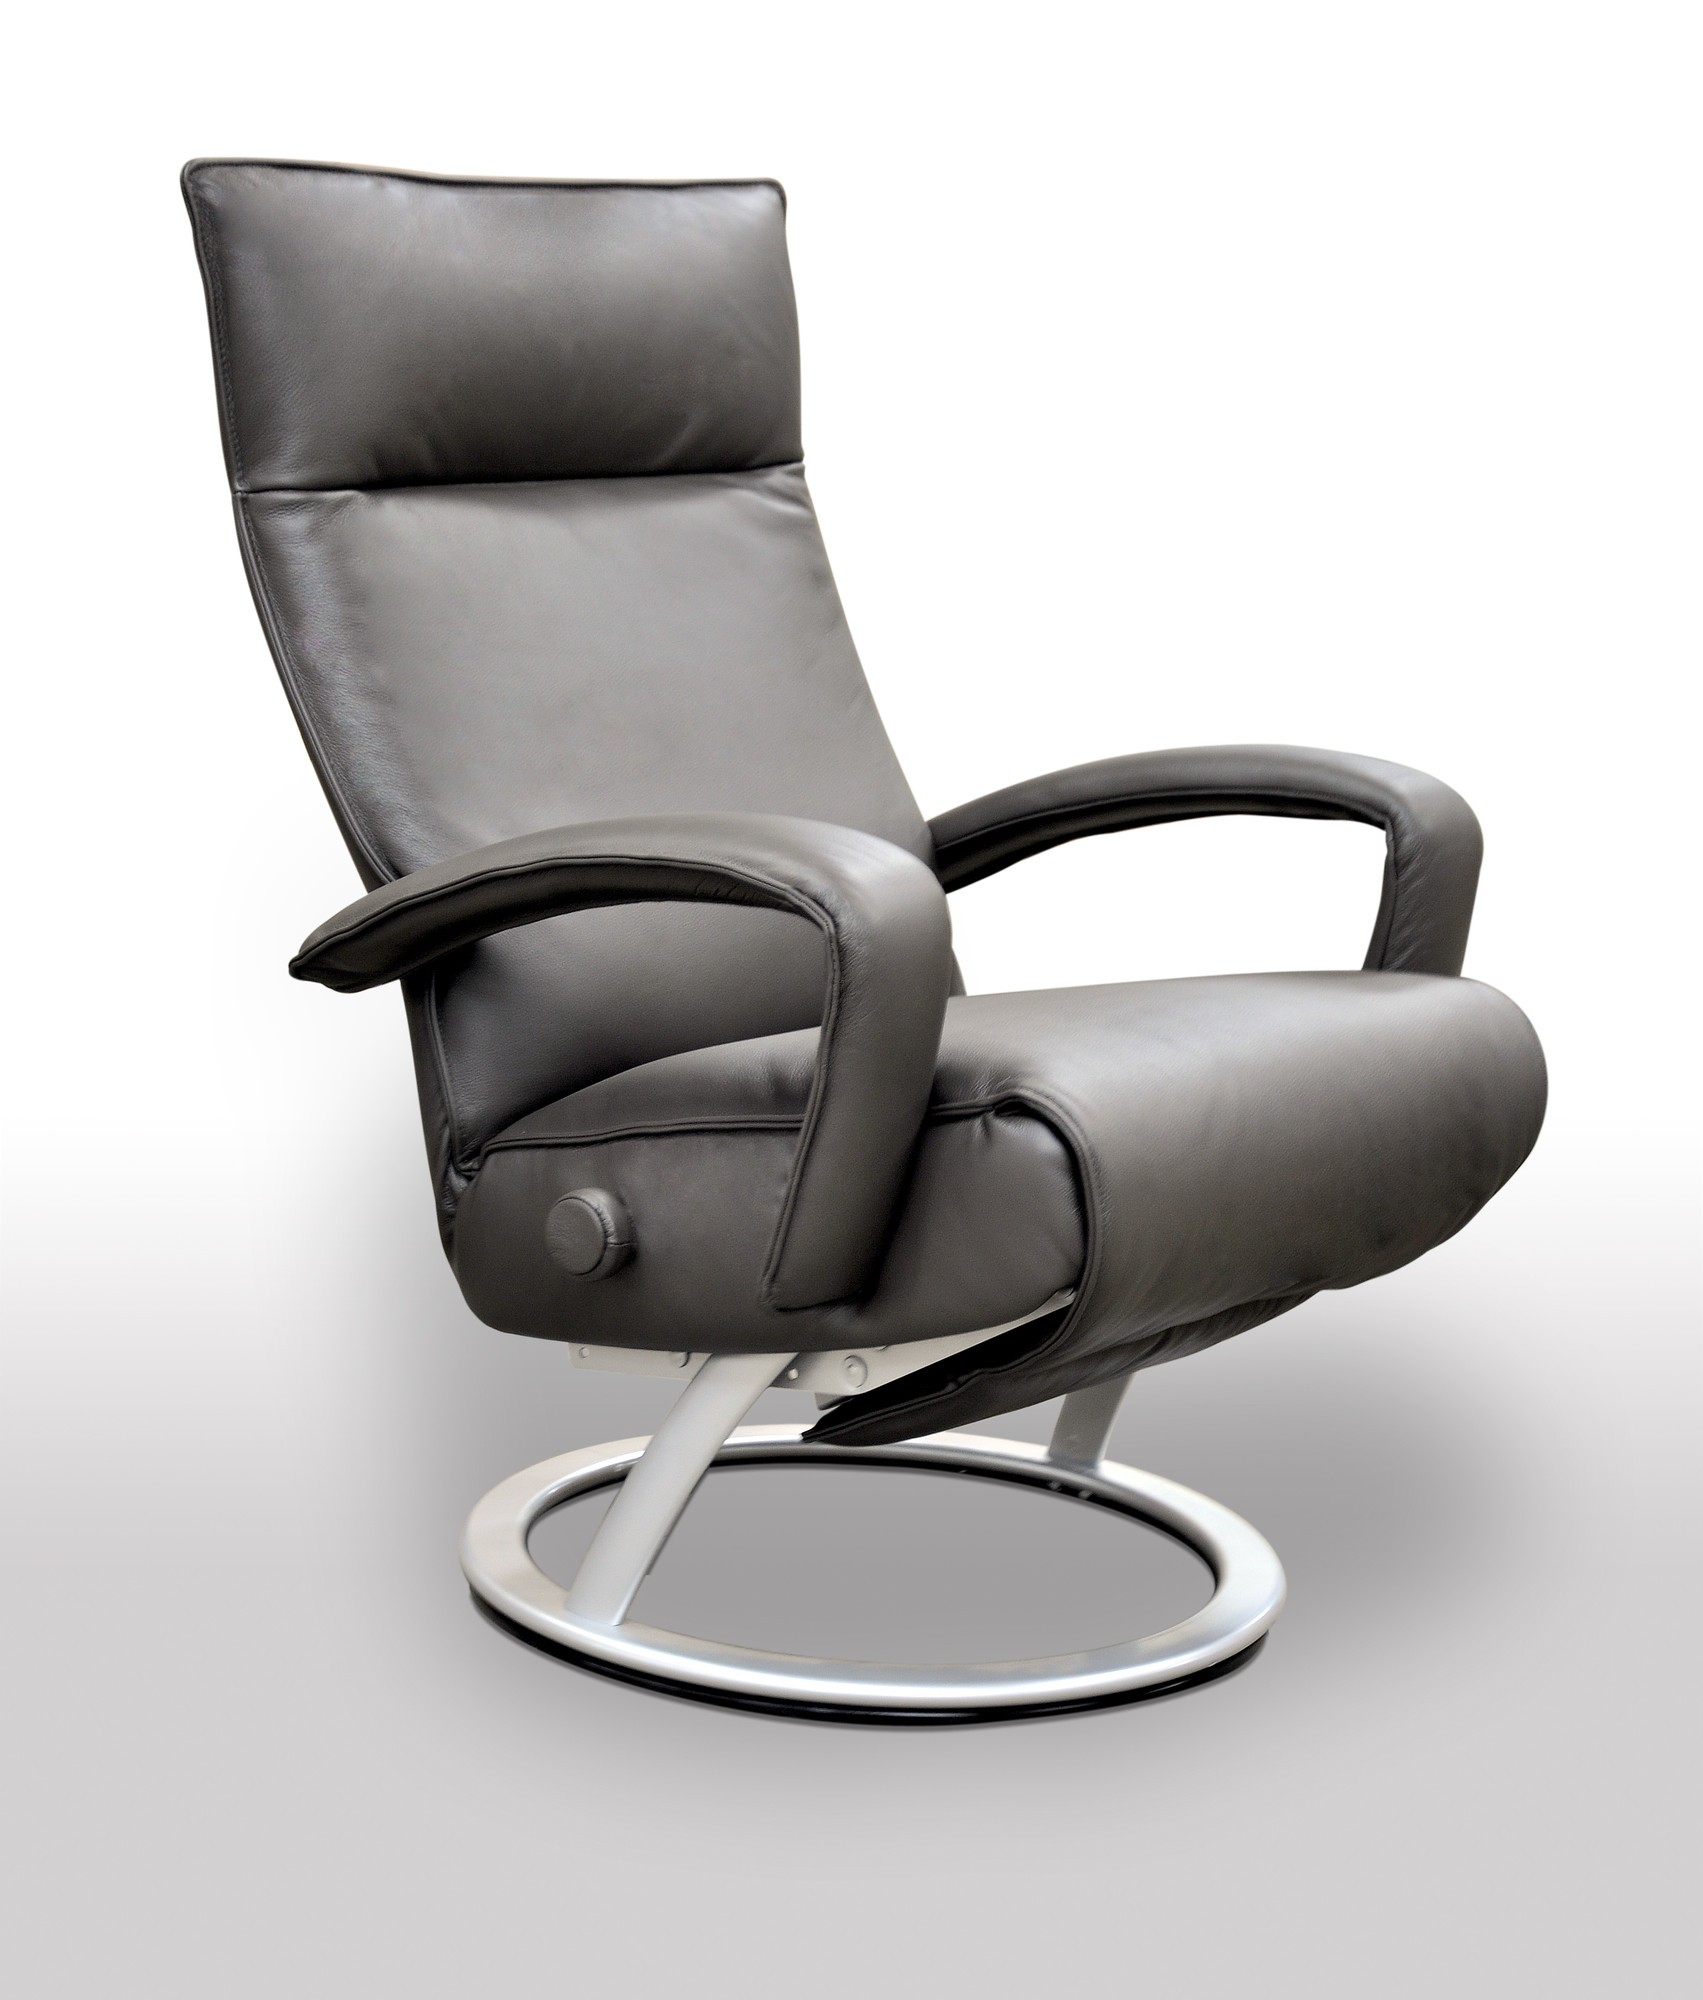 Sears Recliners Furniture | Sears Recliners | Reclining Loveseat Cheap